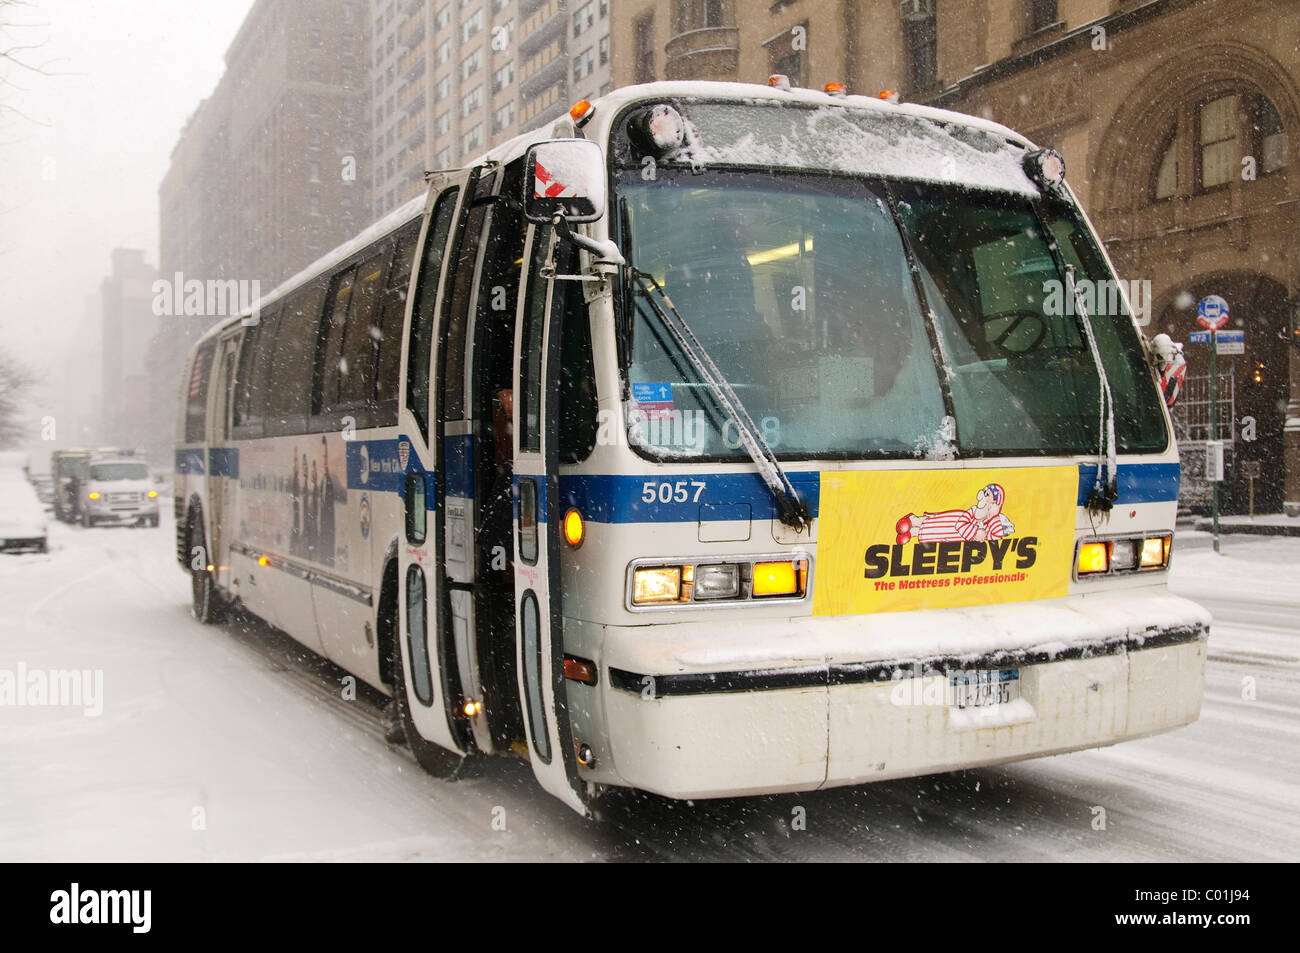 New Mta Bus Stock Photos New Mta Bus Stock Images Alamy